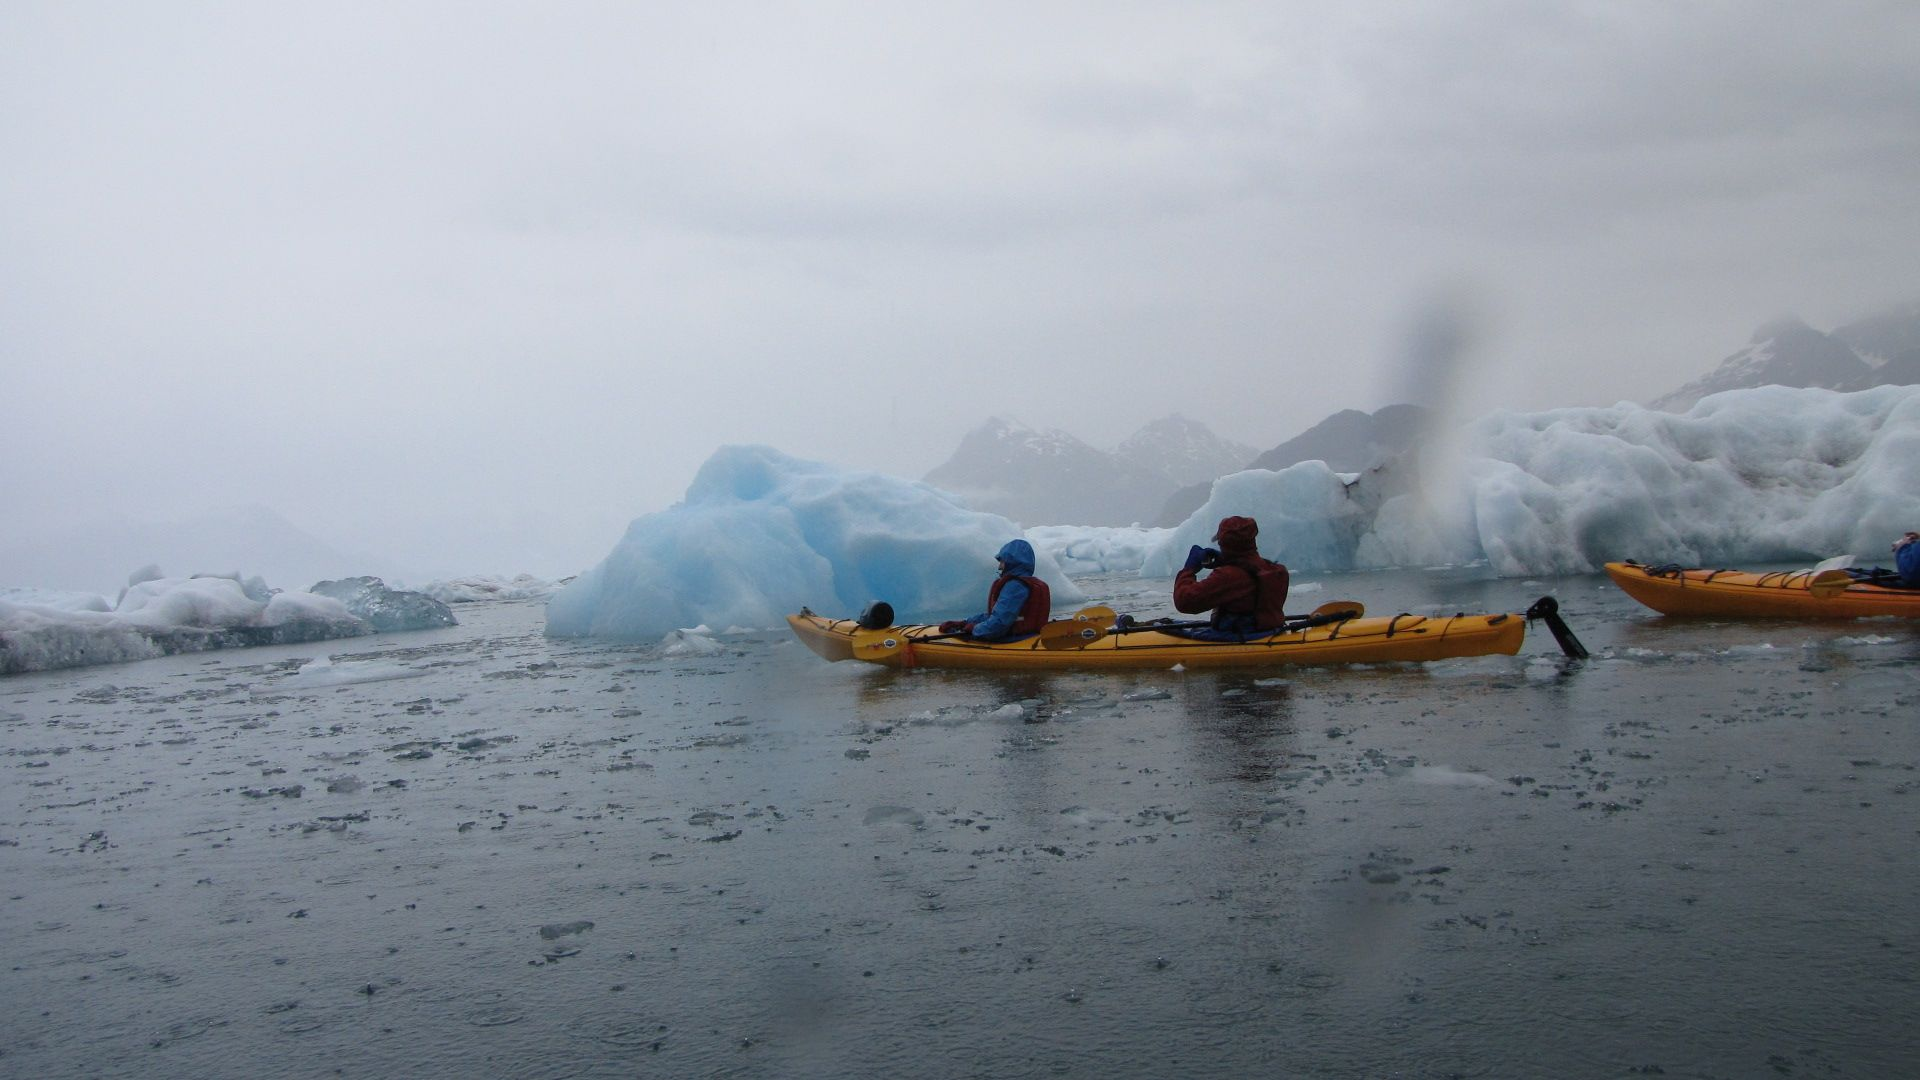 Valdez - Columbia Glacier Kayaking, still raining